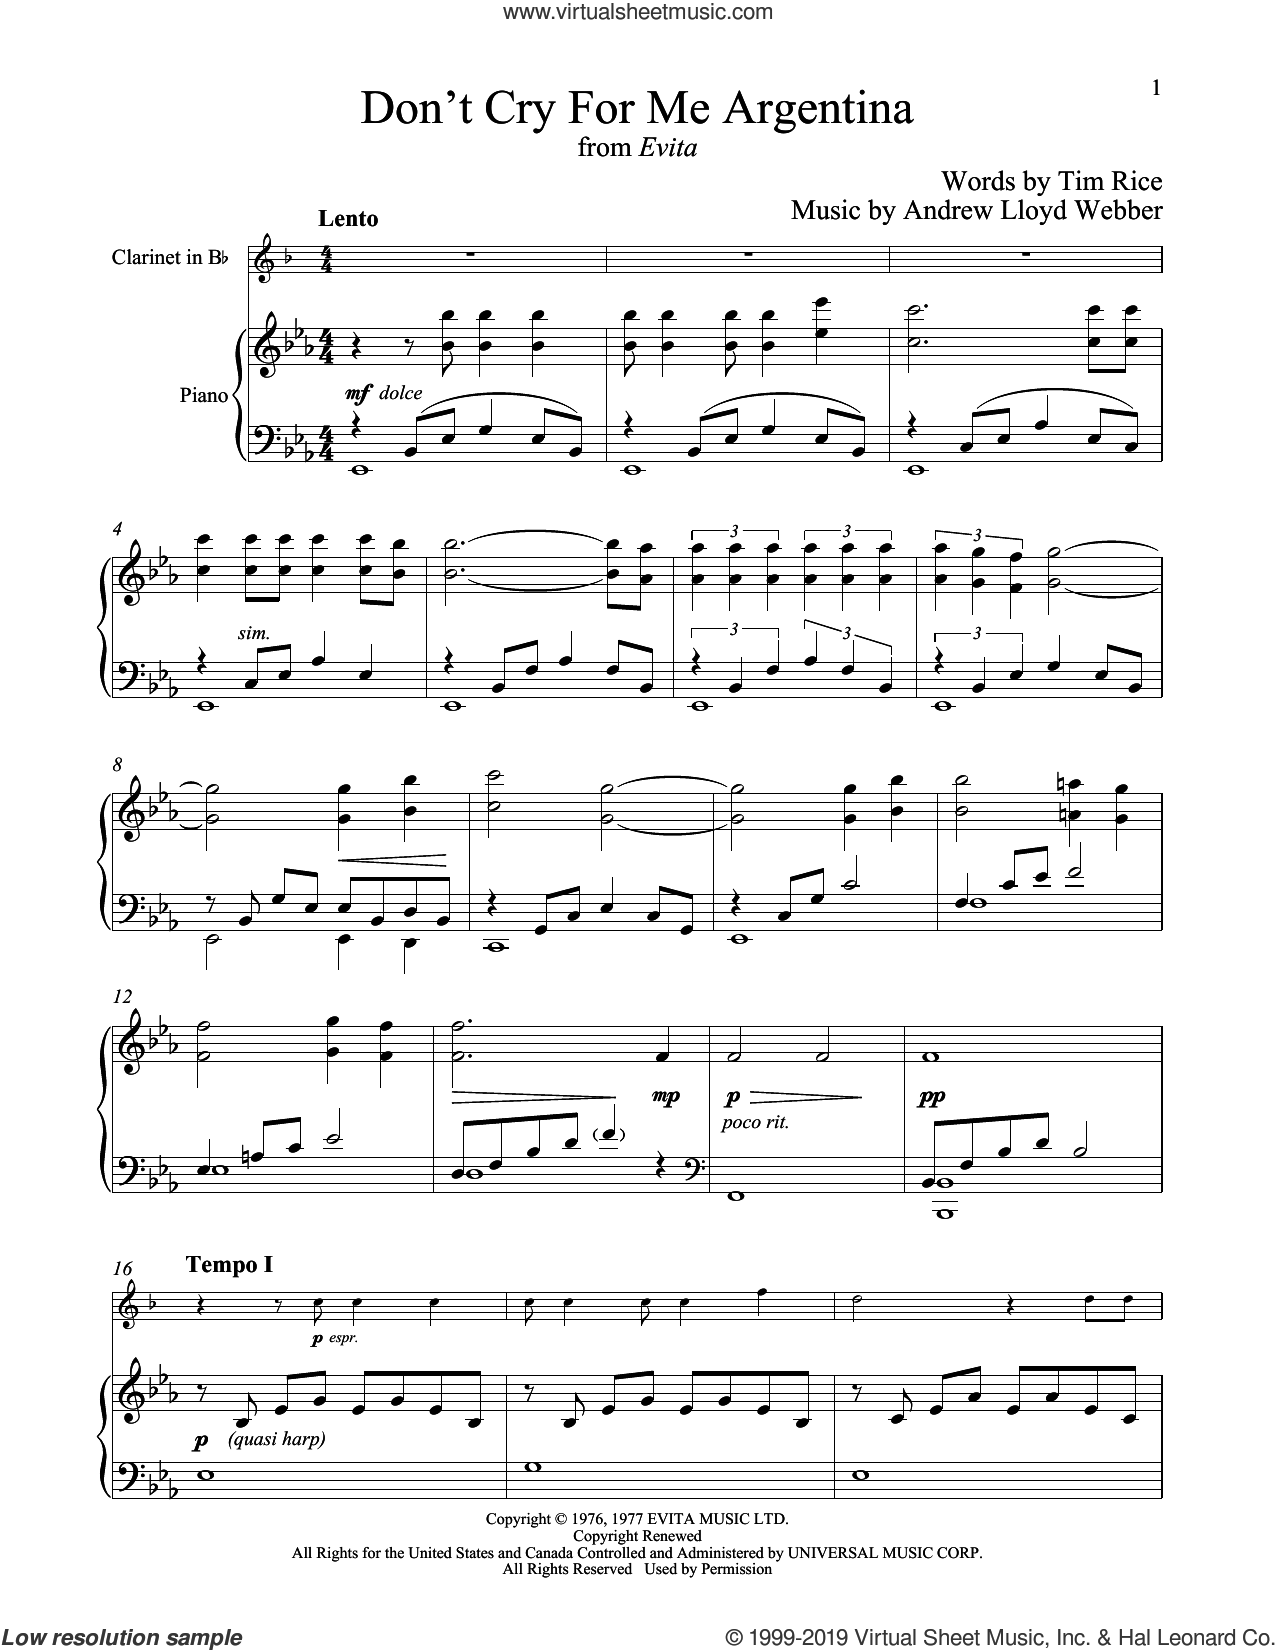 Don't Cry For Me Argentina sheet music for clarinet and piano by Andrew Lloyd Webber, Madonna and Tim Rice, intermediate skill level